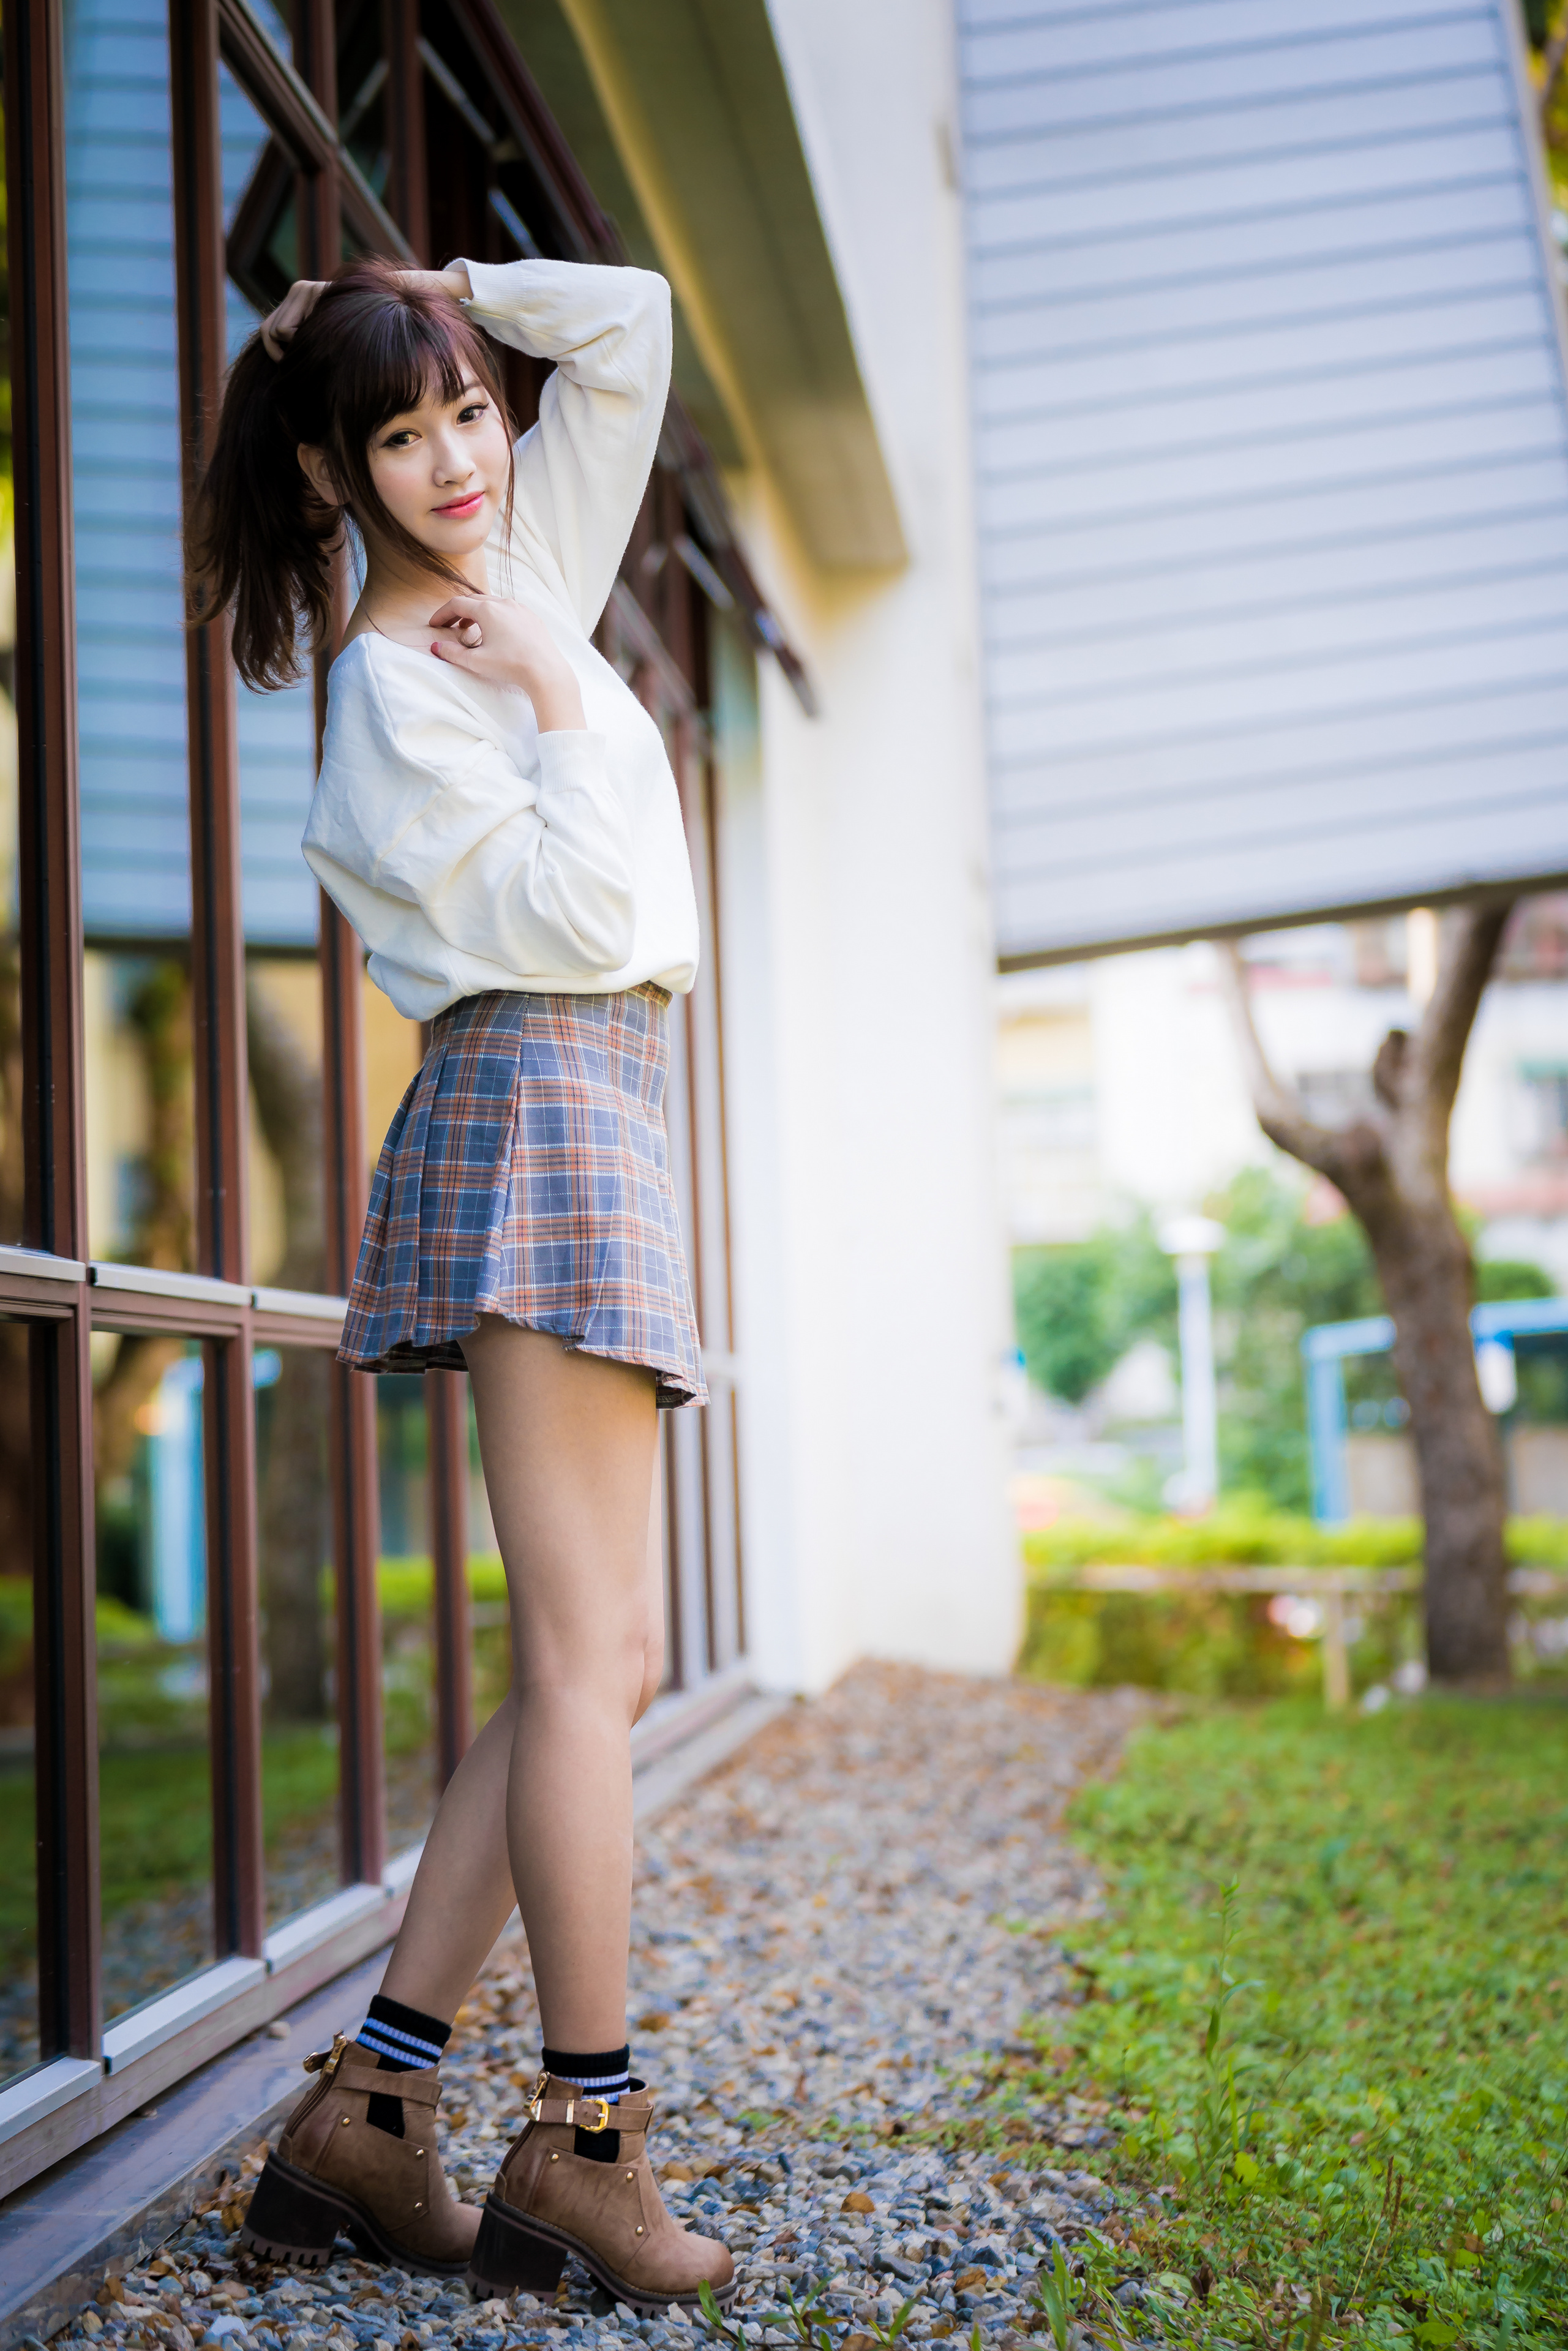 Photos Skirt Bokeh posing young woman Legs Asiatic Staring  for Mobile phone blurred background Pose Girls female Asian Glance